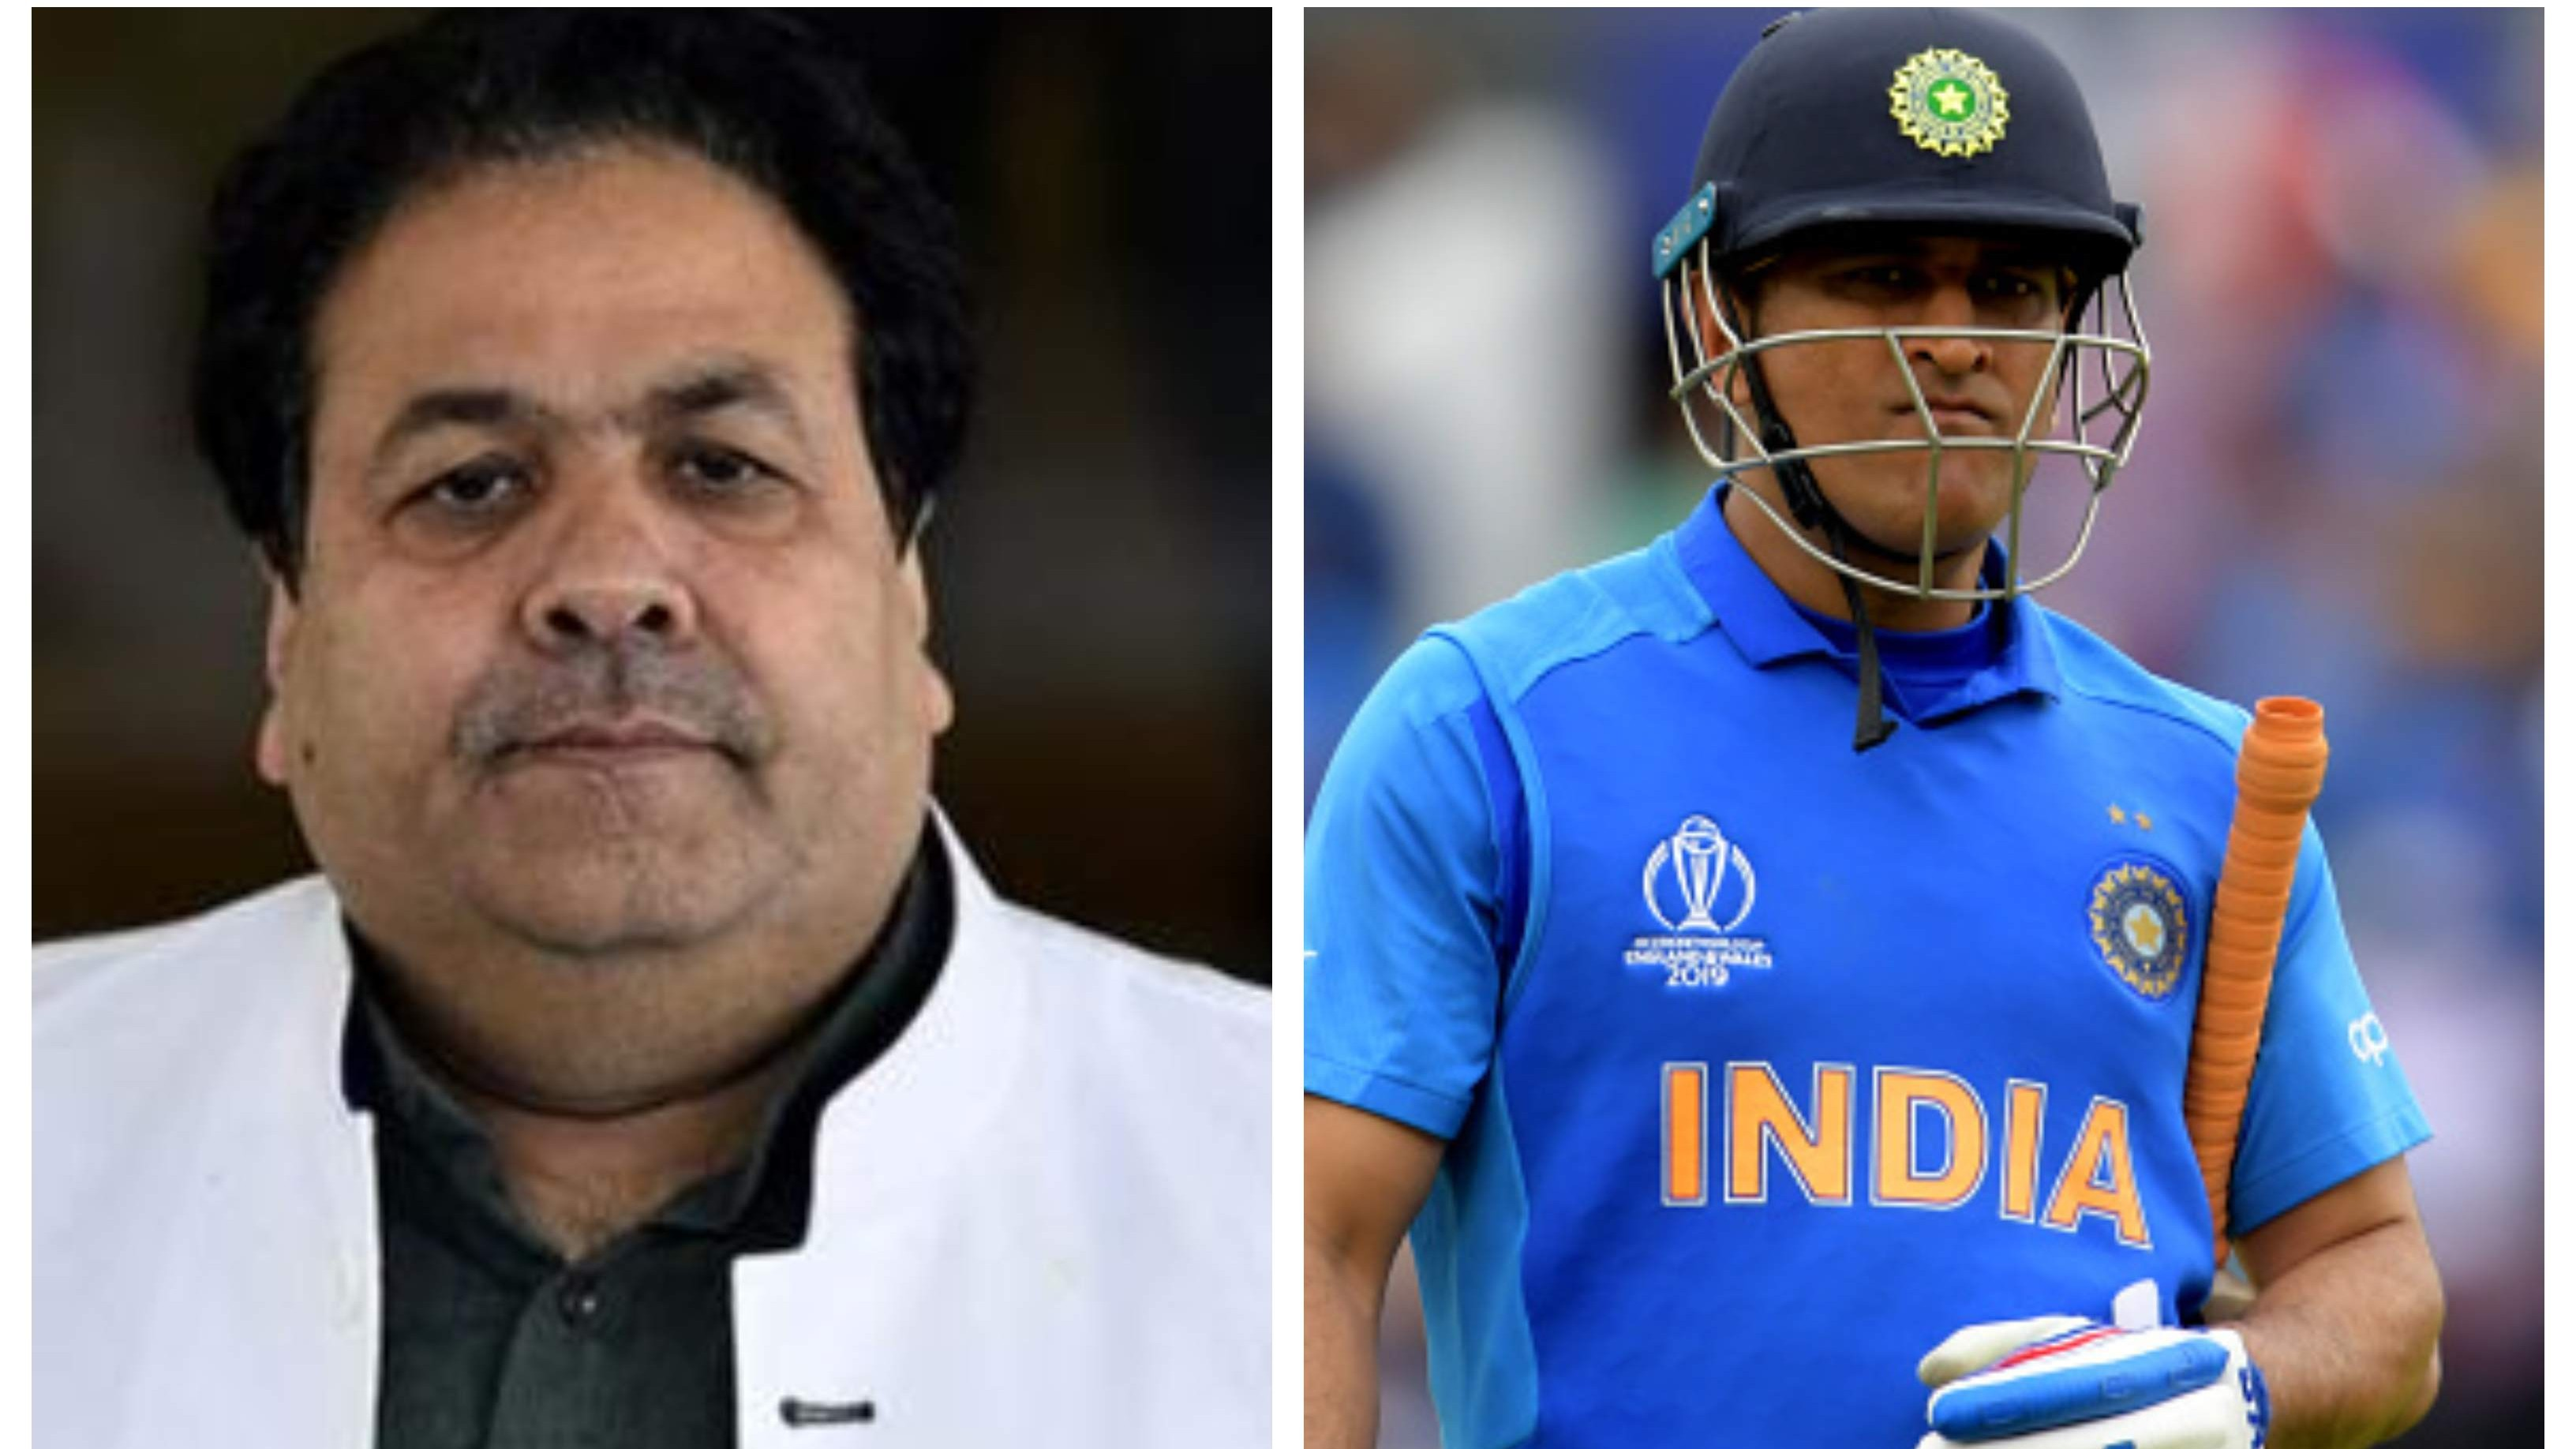 'Dhoni has a lot more cricket left in him', says former IPL chairman Rajiv Shukla